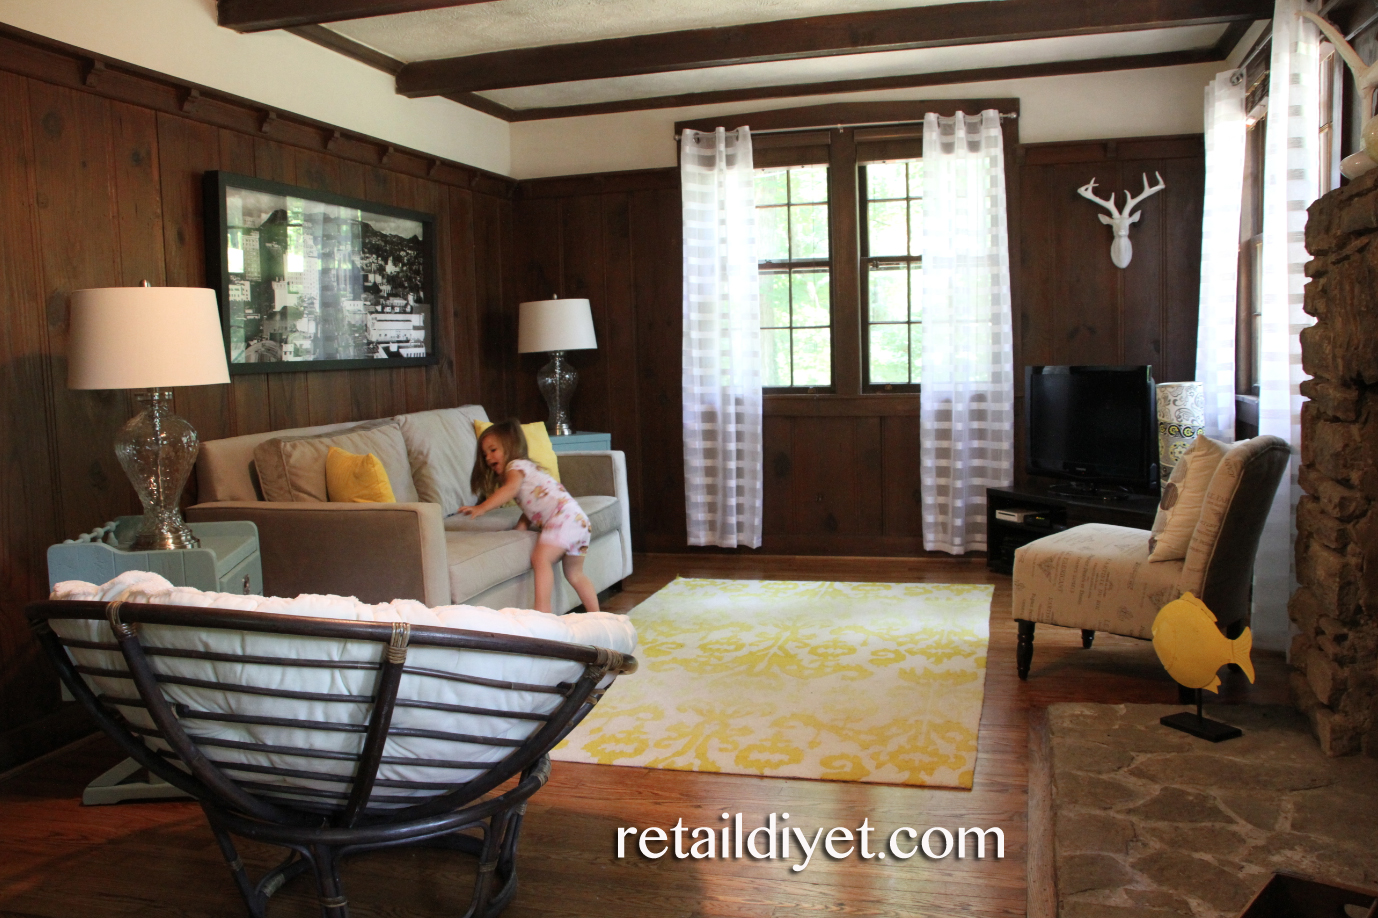 Our tennessee life formerly the retail diyet living room decorating on a budget - Living room design on a budget ...